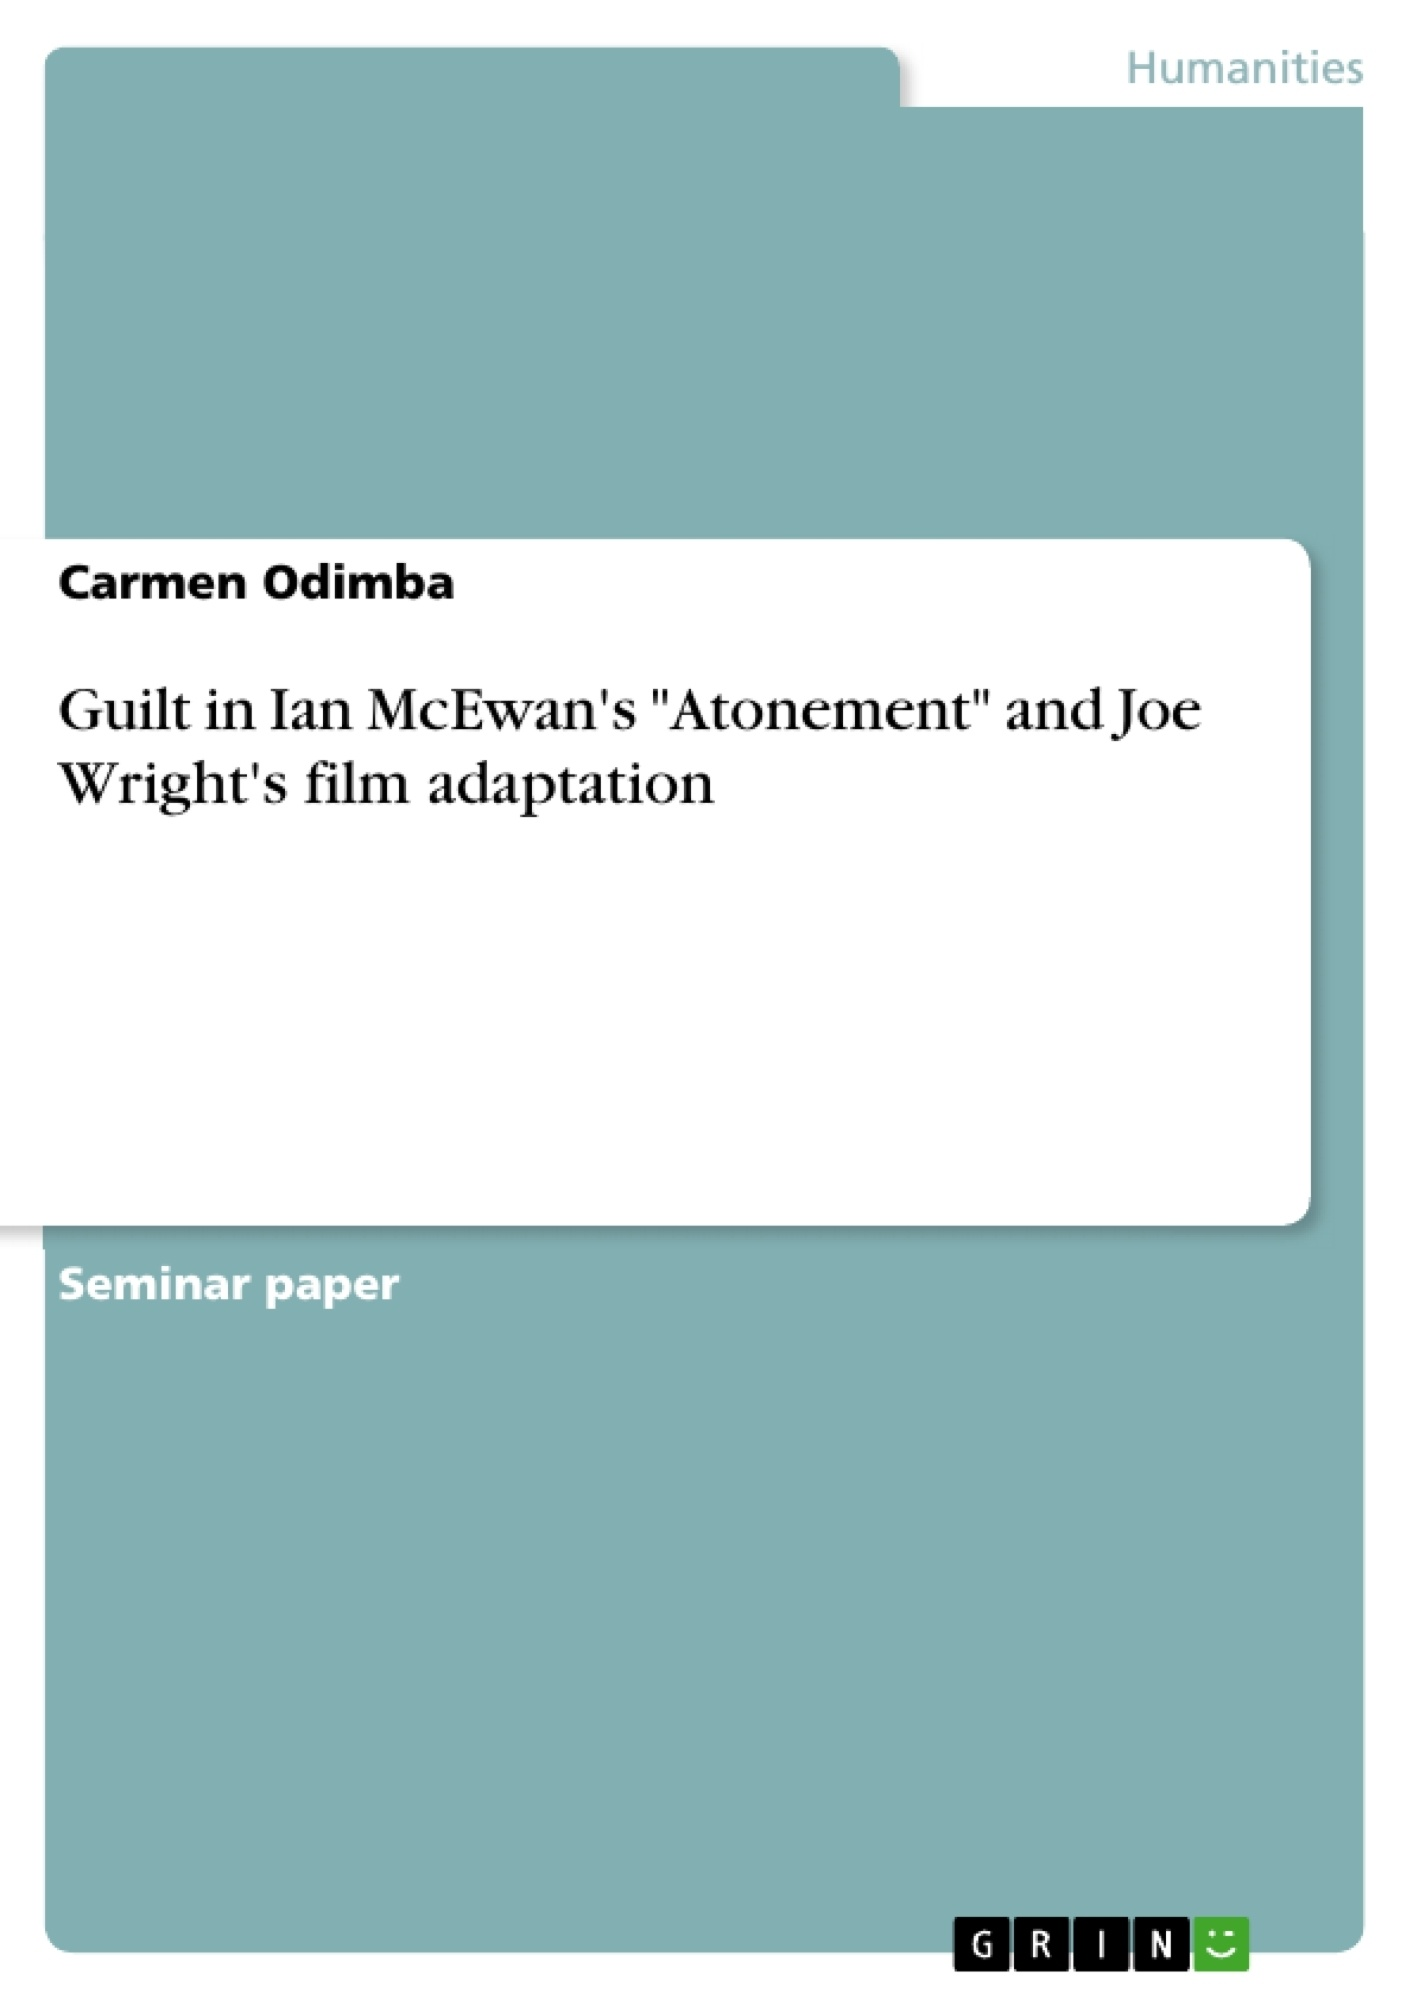 thesis on film adaptation Free film adaptation papers, essays, and research papers.